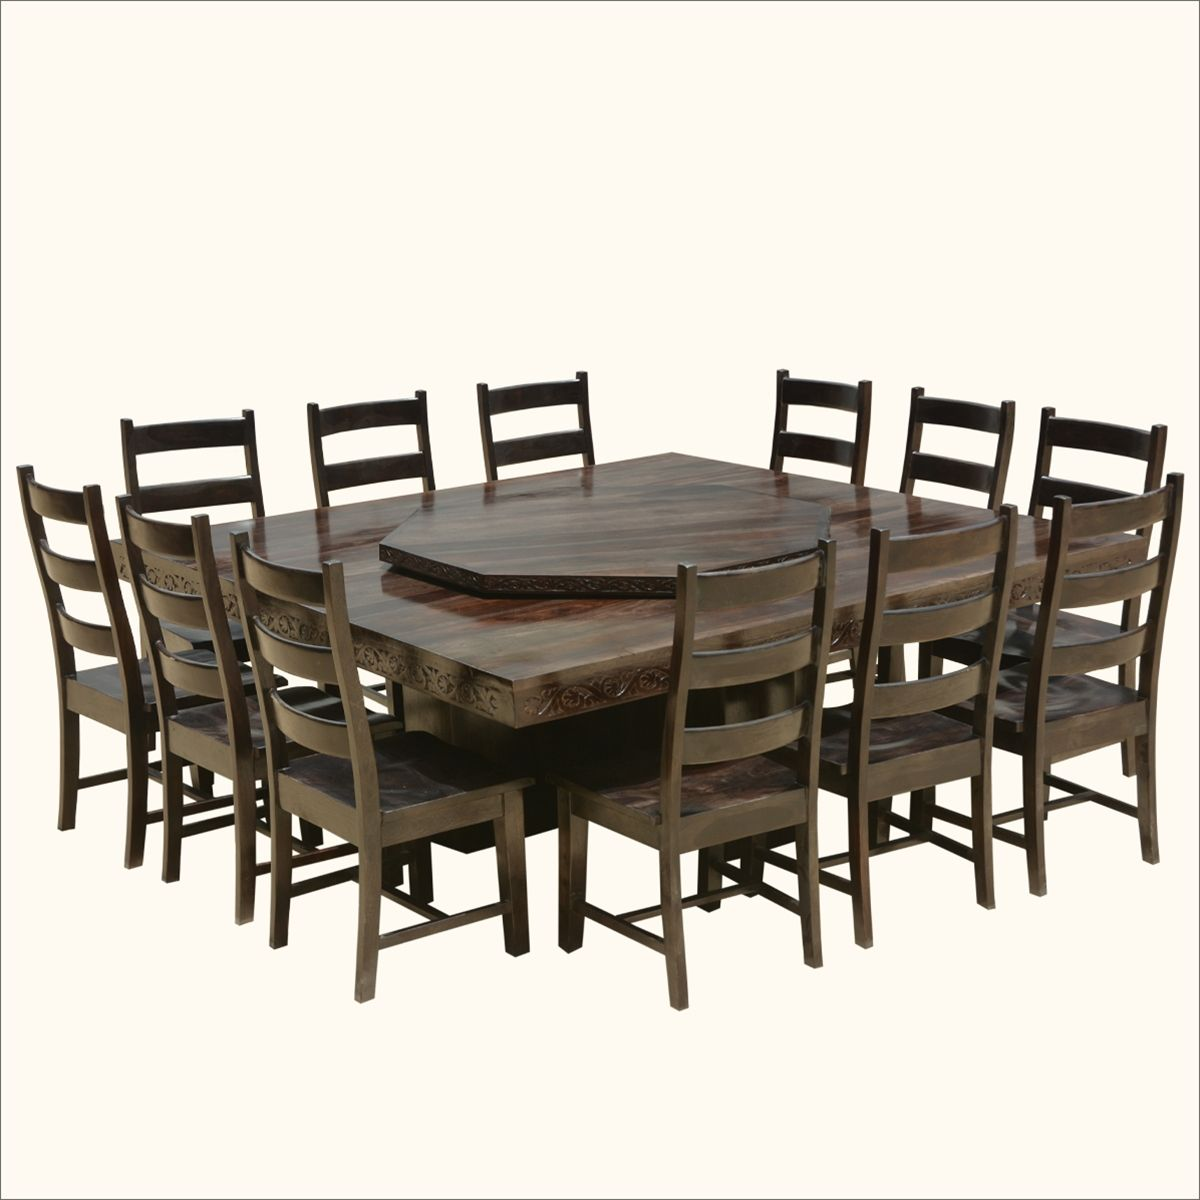 Round Dining Room Tables For 12: Modern Pioneer Solid Wood Lazy Susan Pedestal Dining Table